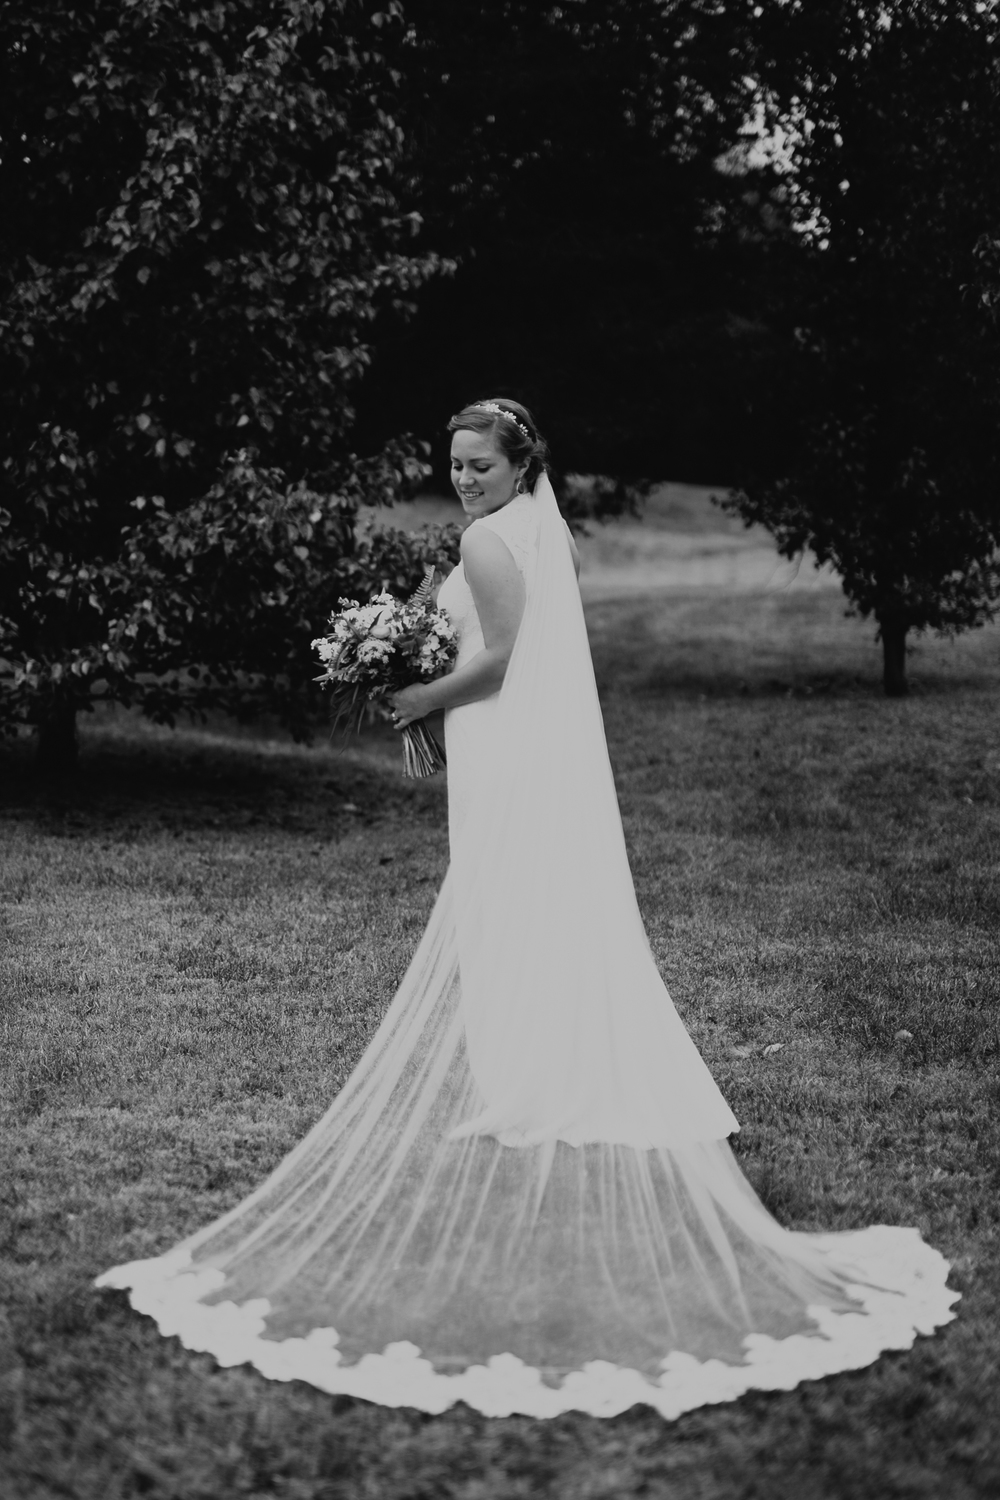 Cedarwood Wedding Photos Nashville Wedding Photographer (28 of 54).jpg